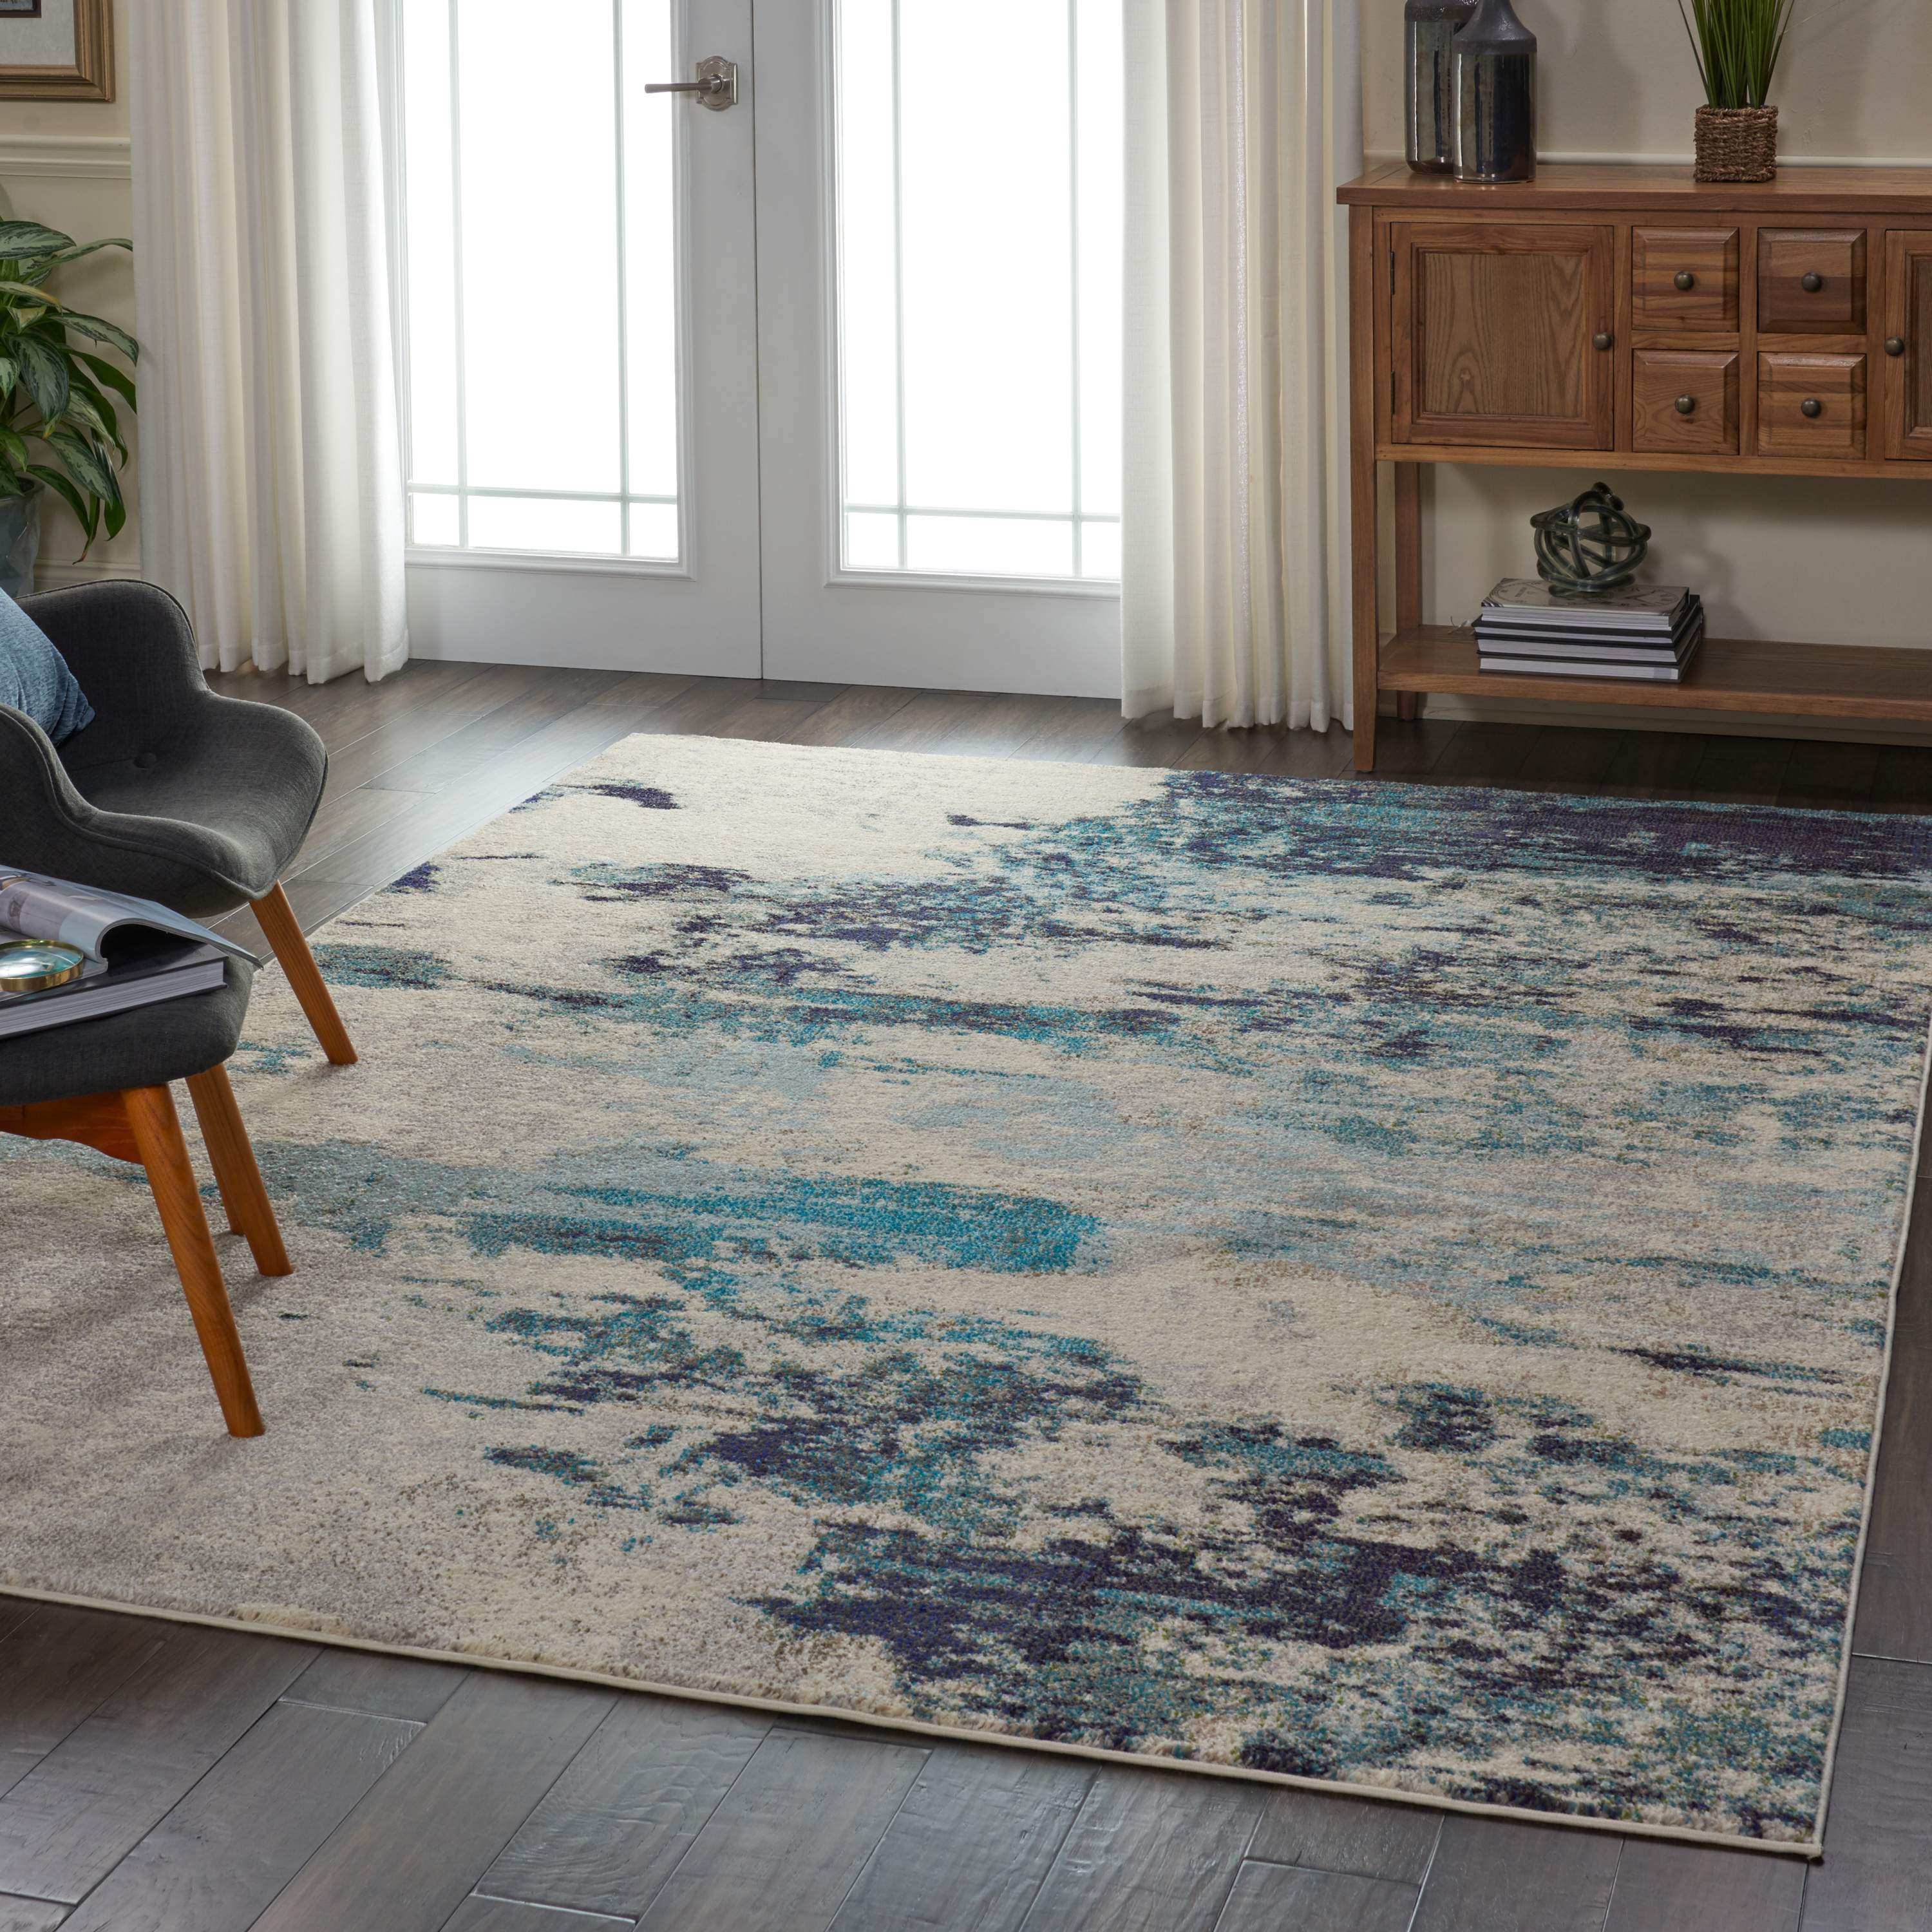 Celestial Ces02 Area Rug Colorful Contemporary Abstract By